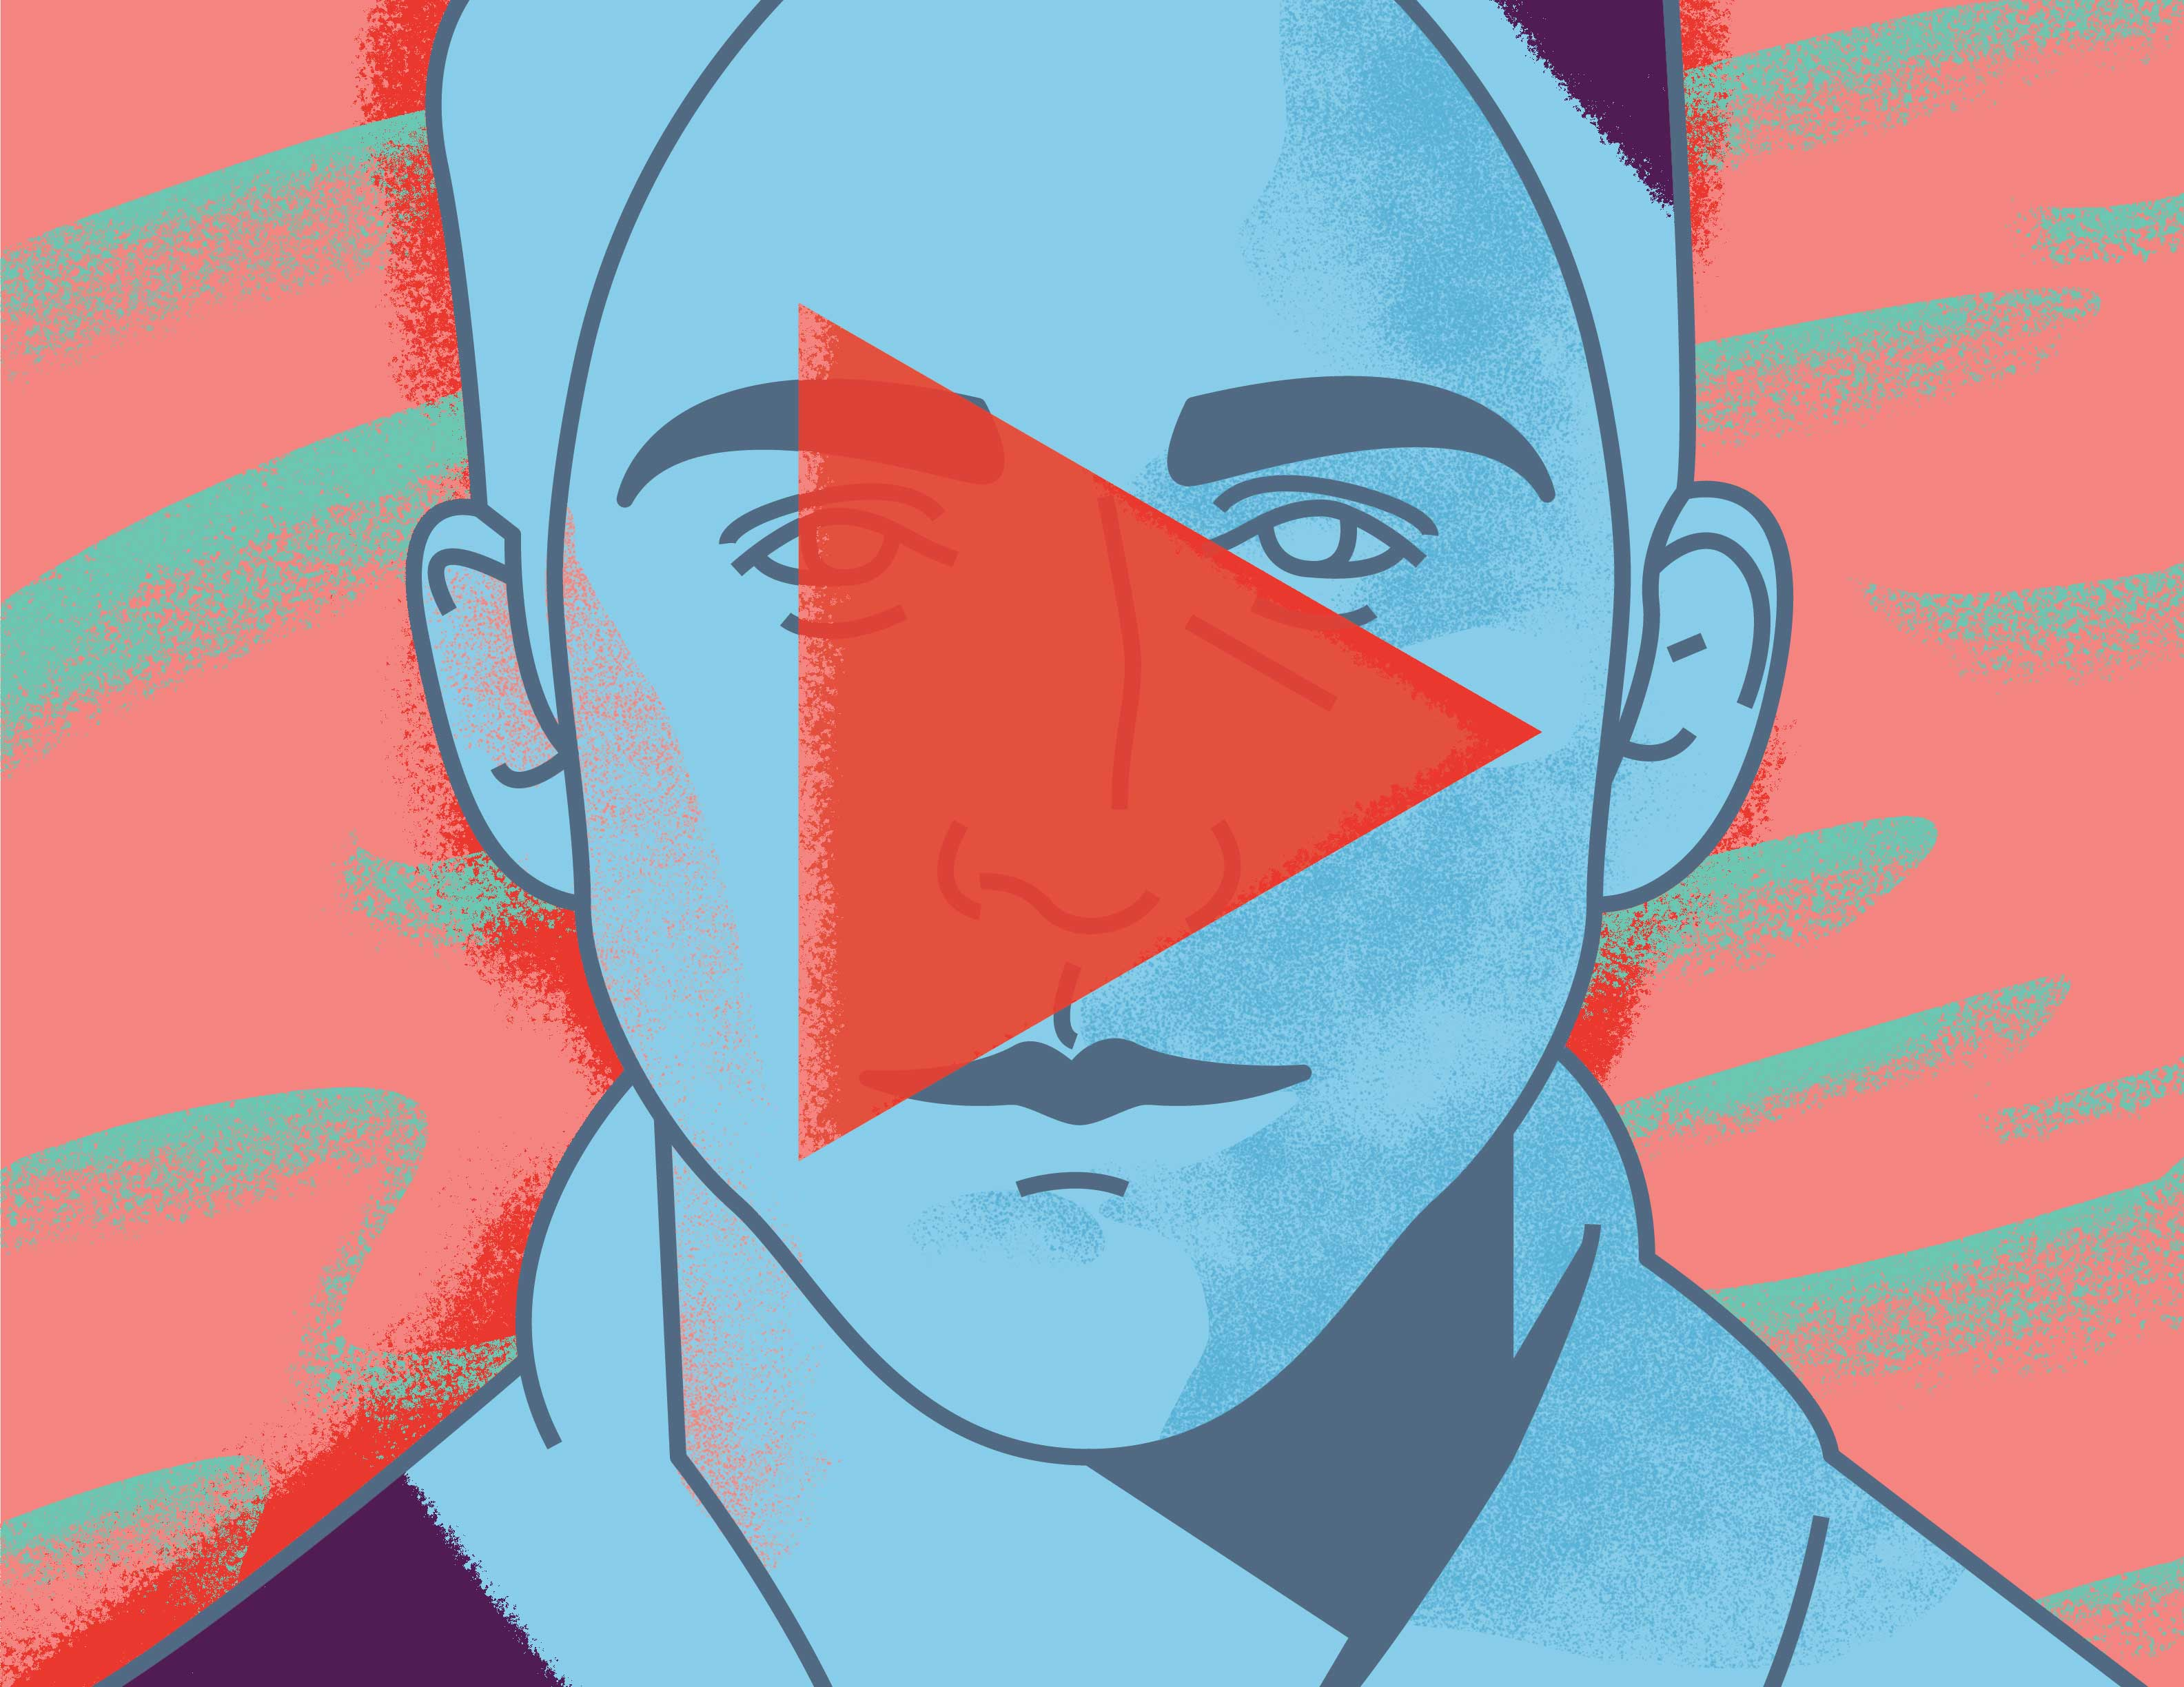 Illustration for an article on viewer experience